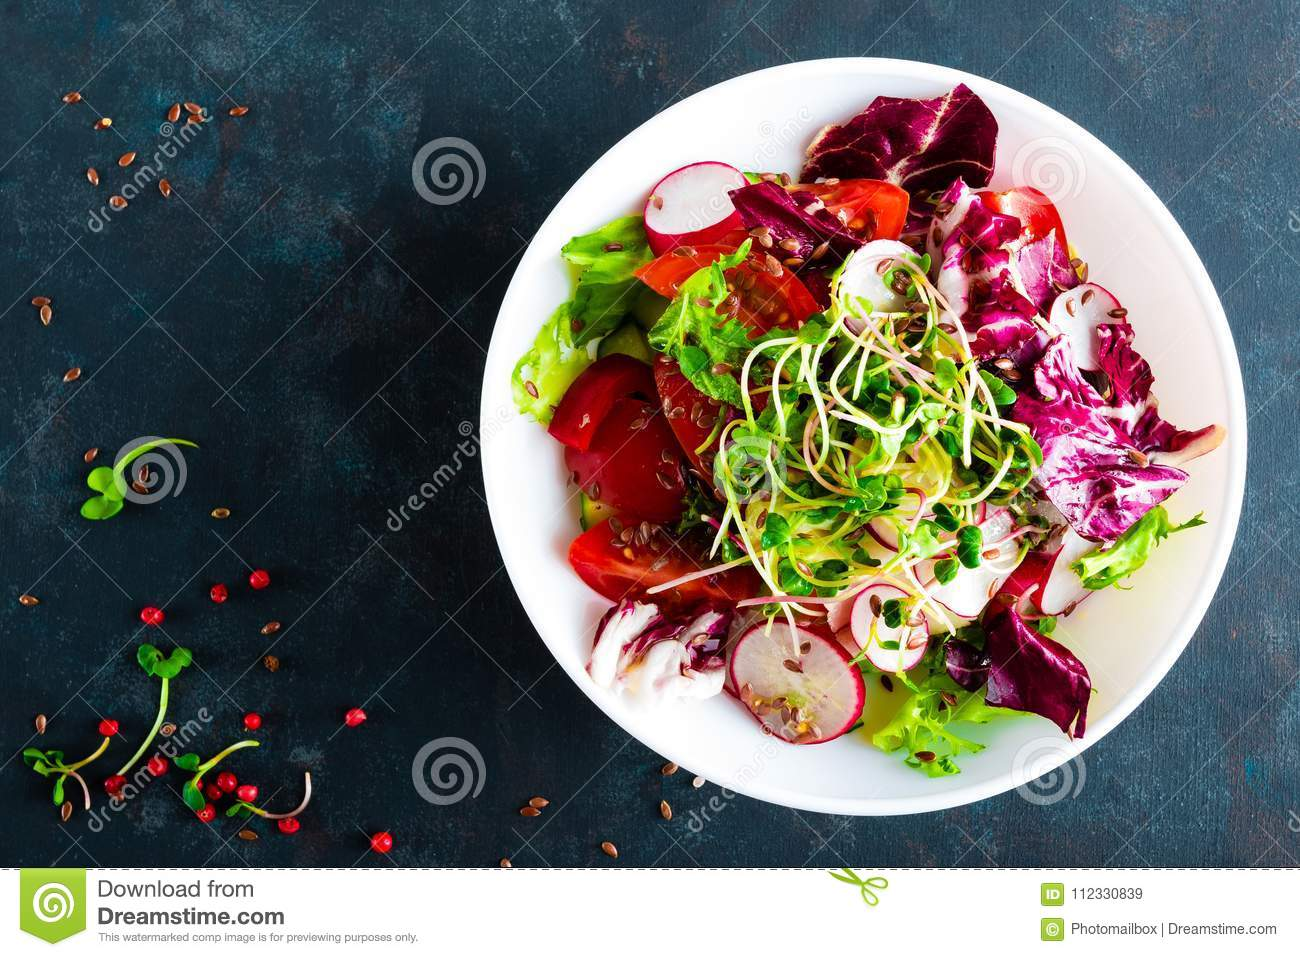 Fresh vegetable salad plate of tomatoes, italian mix, pepper, radish, green sprouts and flax seeds. Vegetarian dish, healthy food.